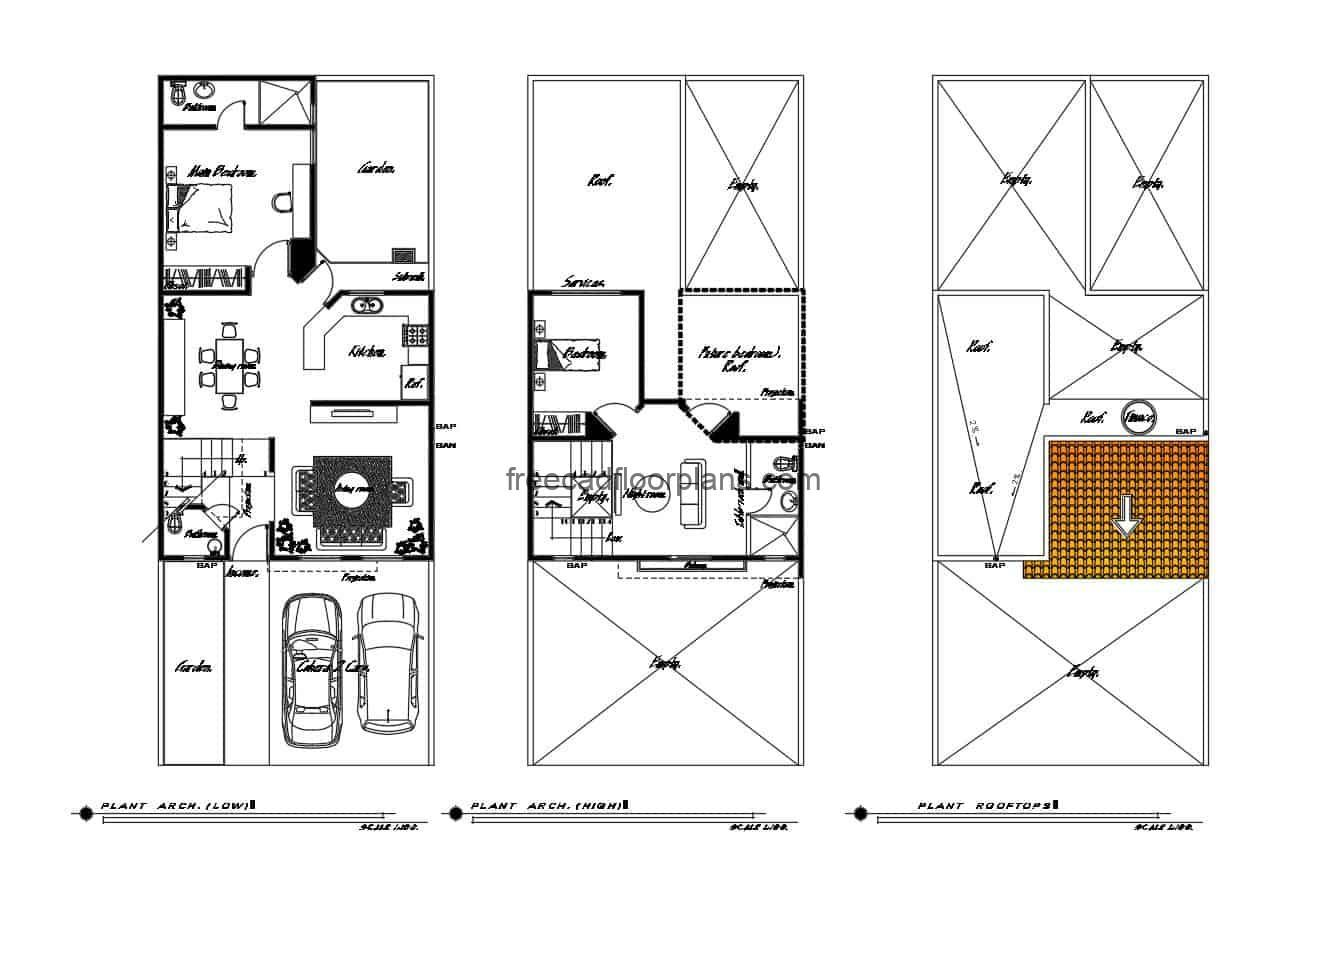 Architectural project of a two-level house with two rooms in autocad, equipped with blocks and DWG furniture